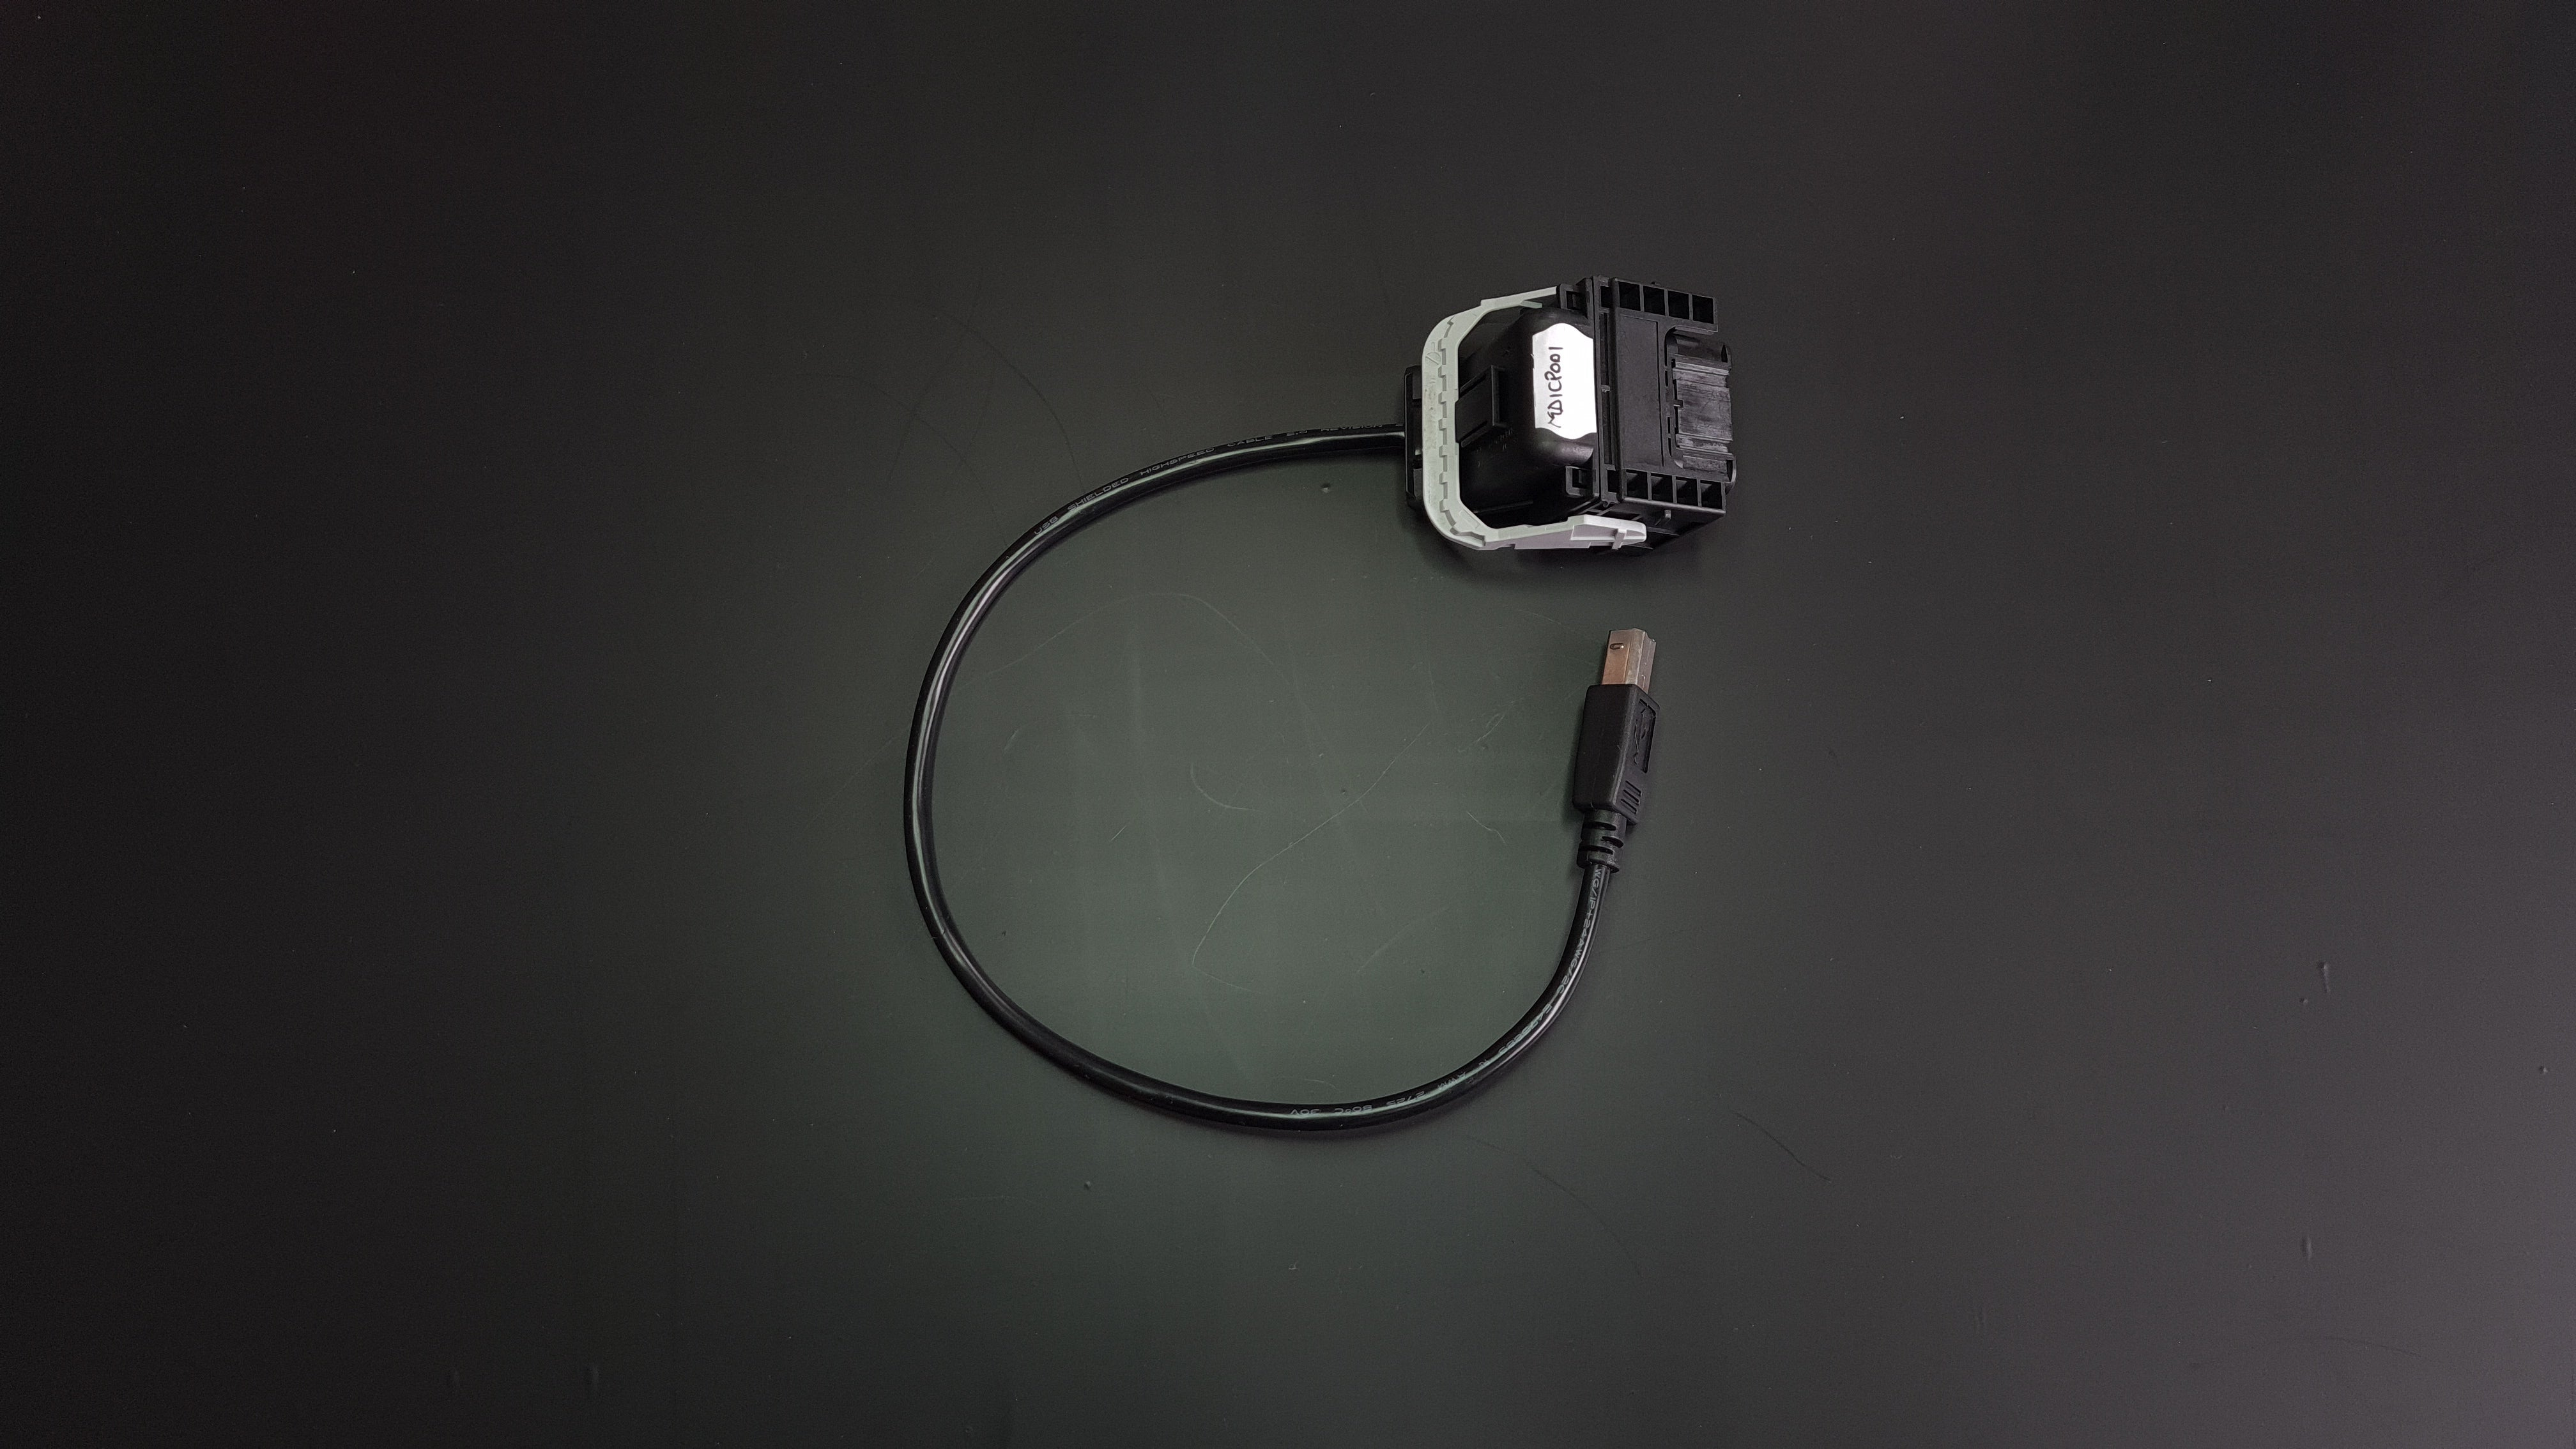 VAG MG1CS011 bench cable for Autotuner